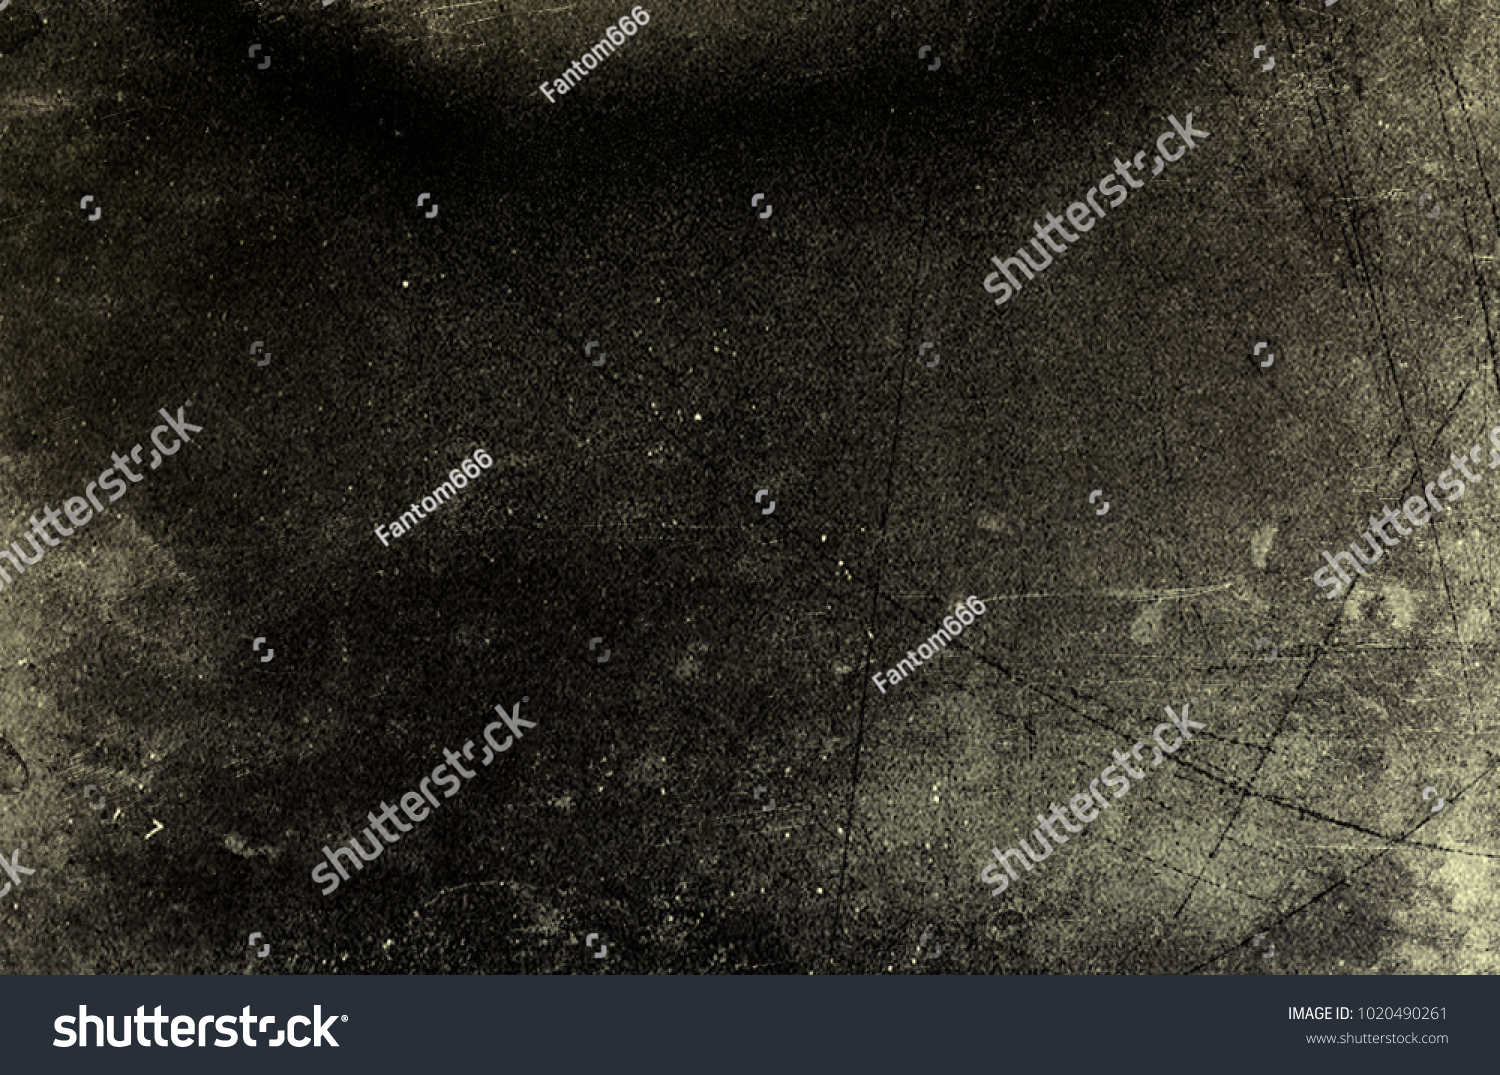 Grunge Dark Background Old Film Effect Stock Photo (Royalty Free ...